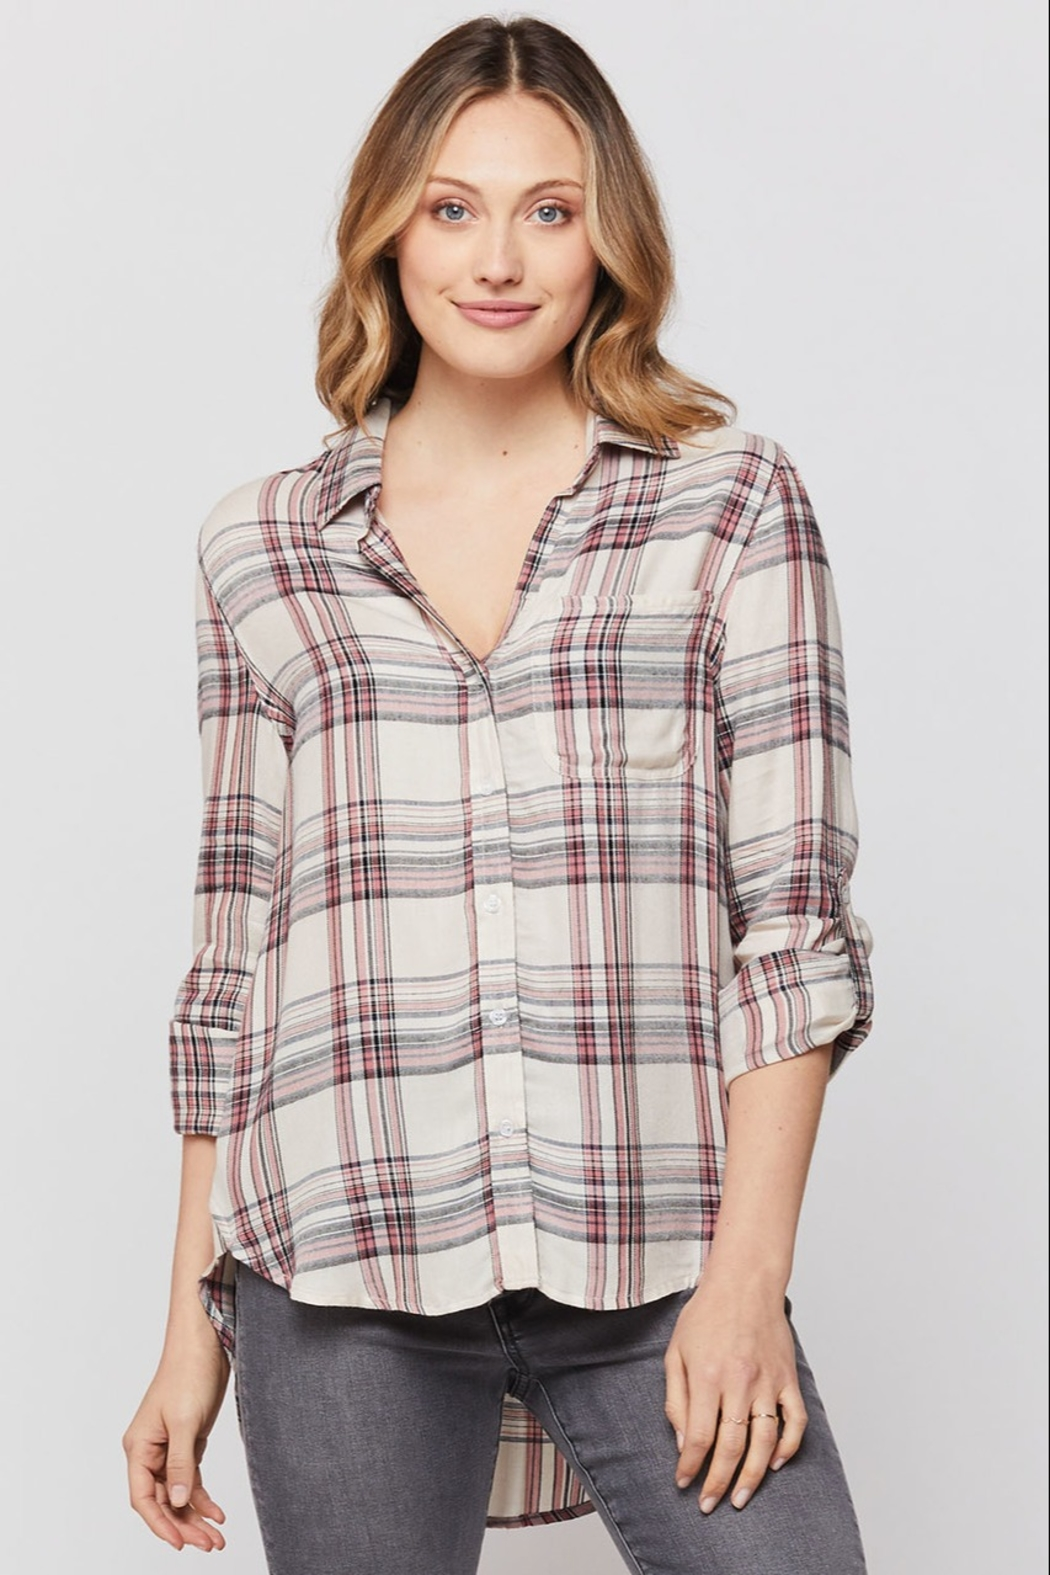 Velvet Heart Elisa Plaid Button Up Shirt - Front Cropped Image